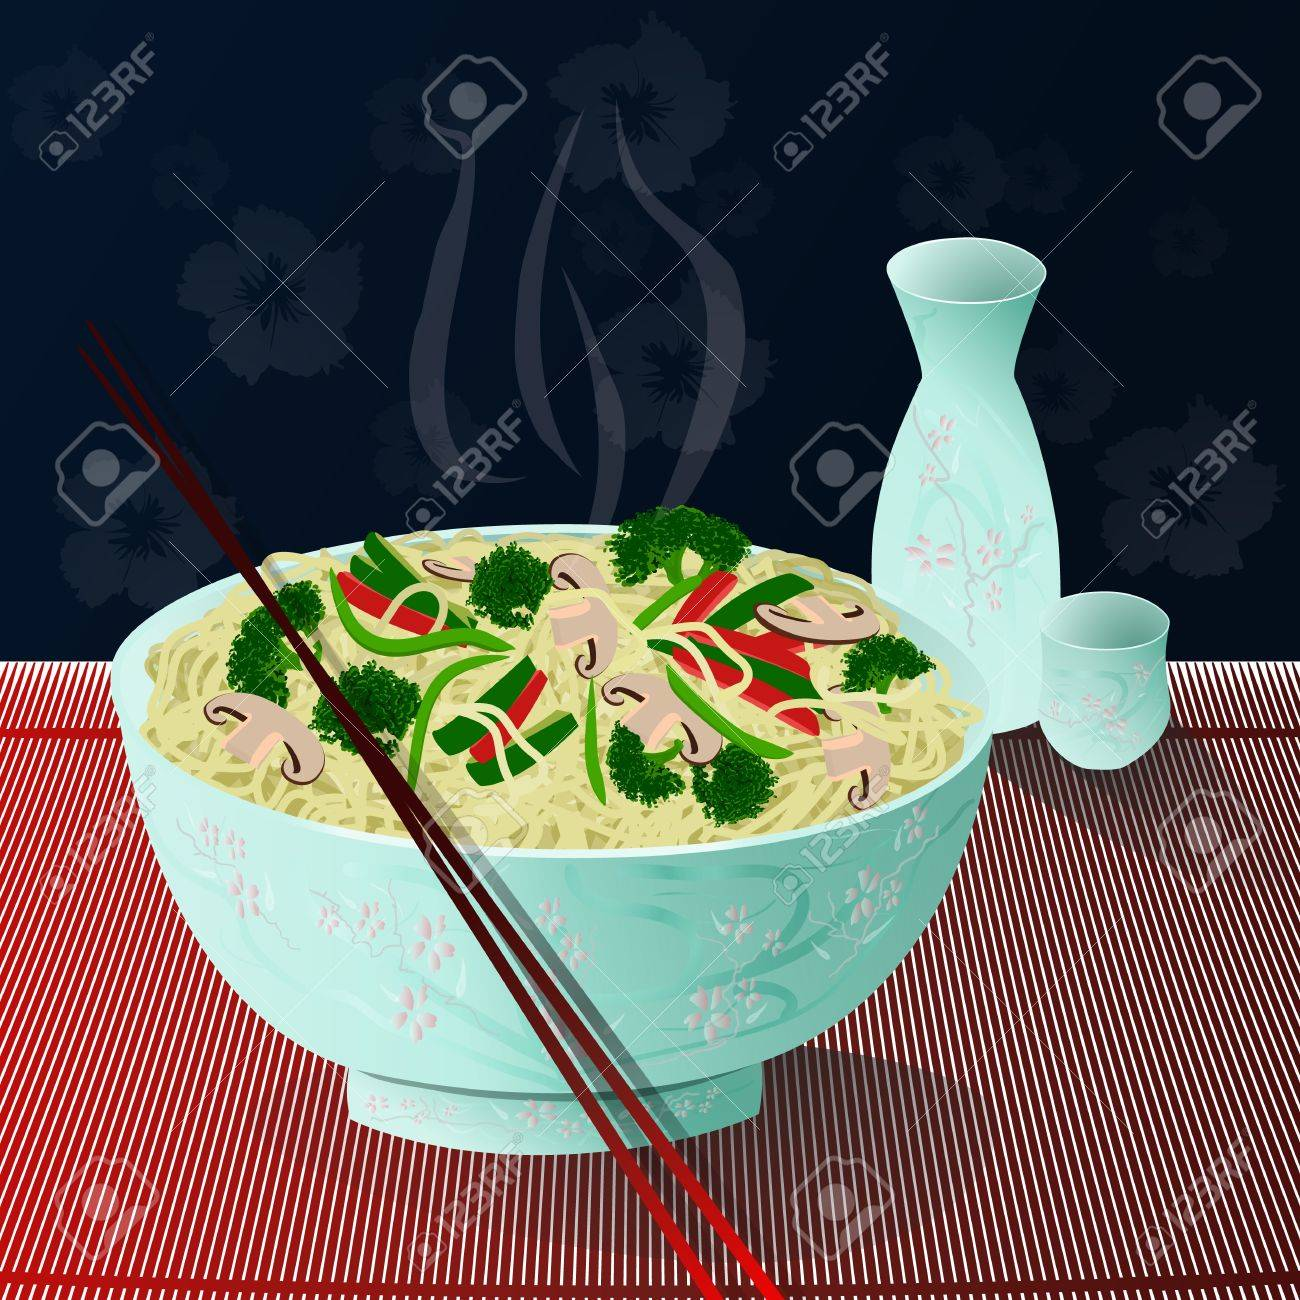 A bowl of hot, delicious noodles with vegetables and sake beside it Noodles2 Stock Vector - 12851874